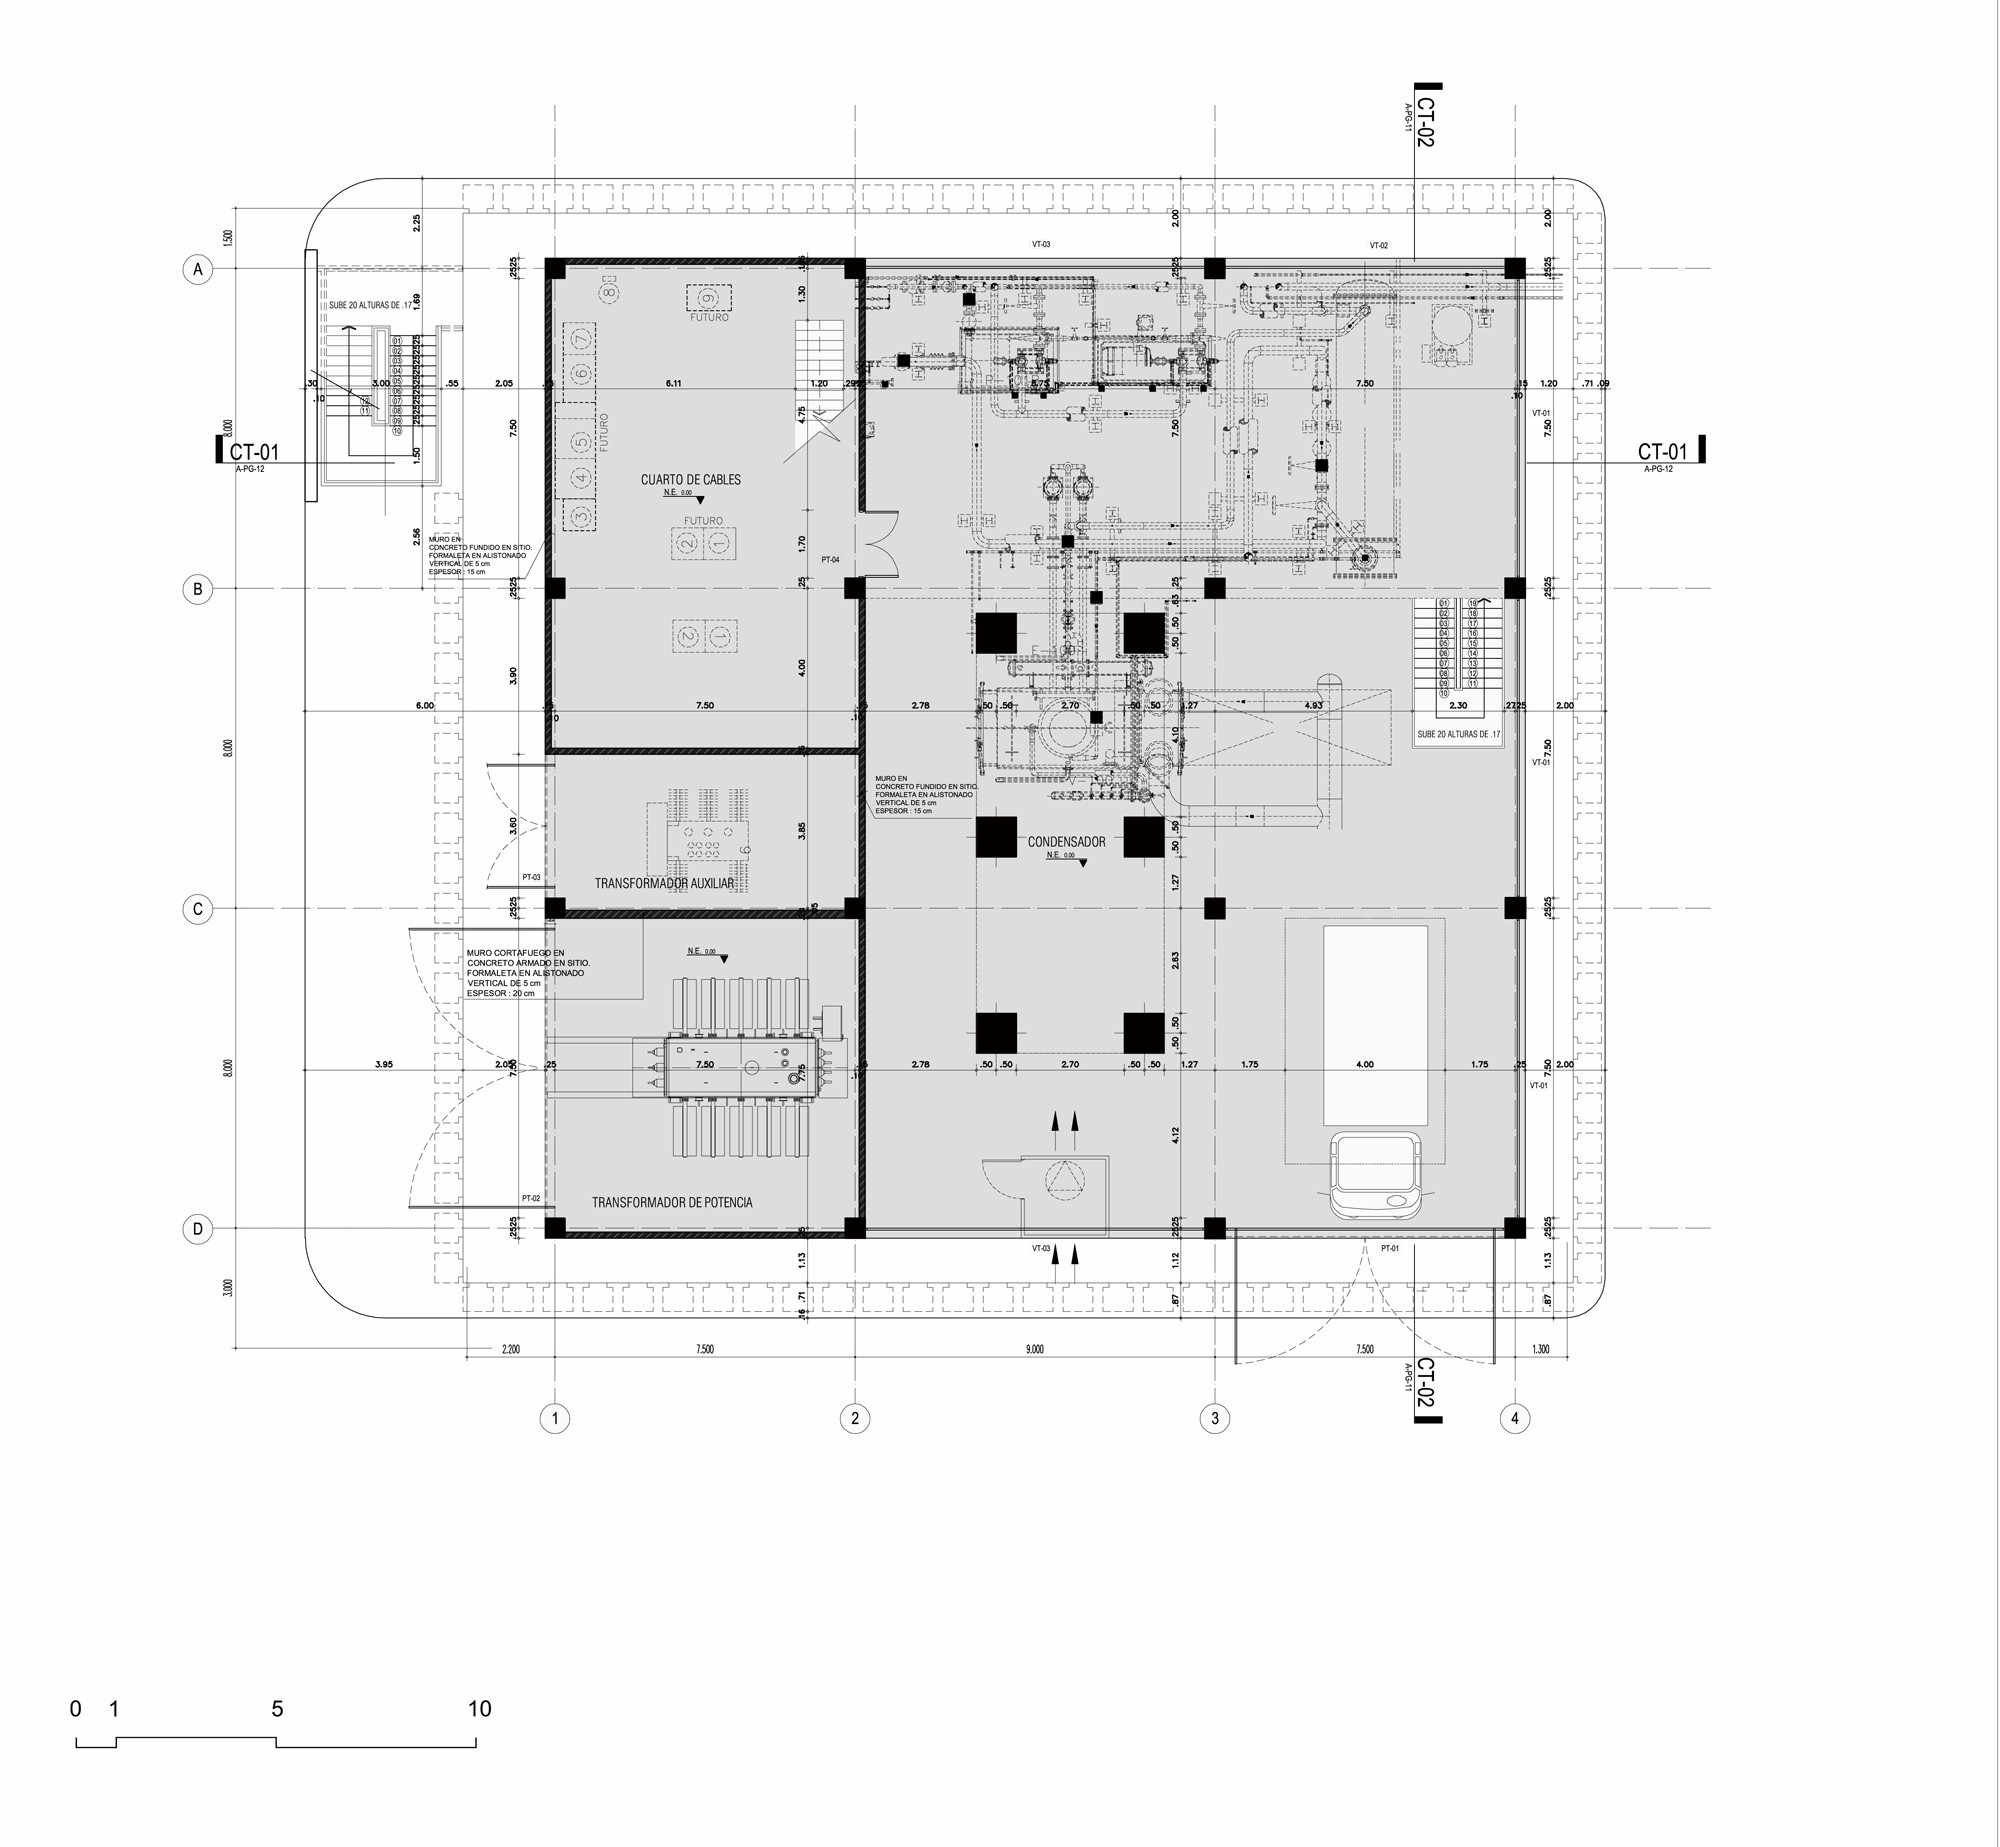 gallery of argos, building for an electrical generator at a cement, wiring diagram